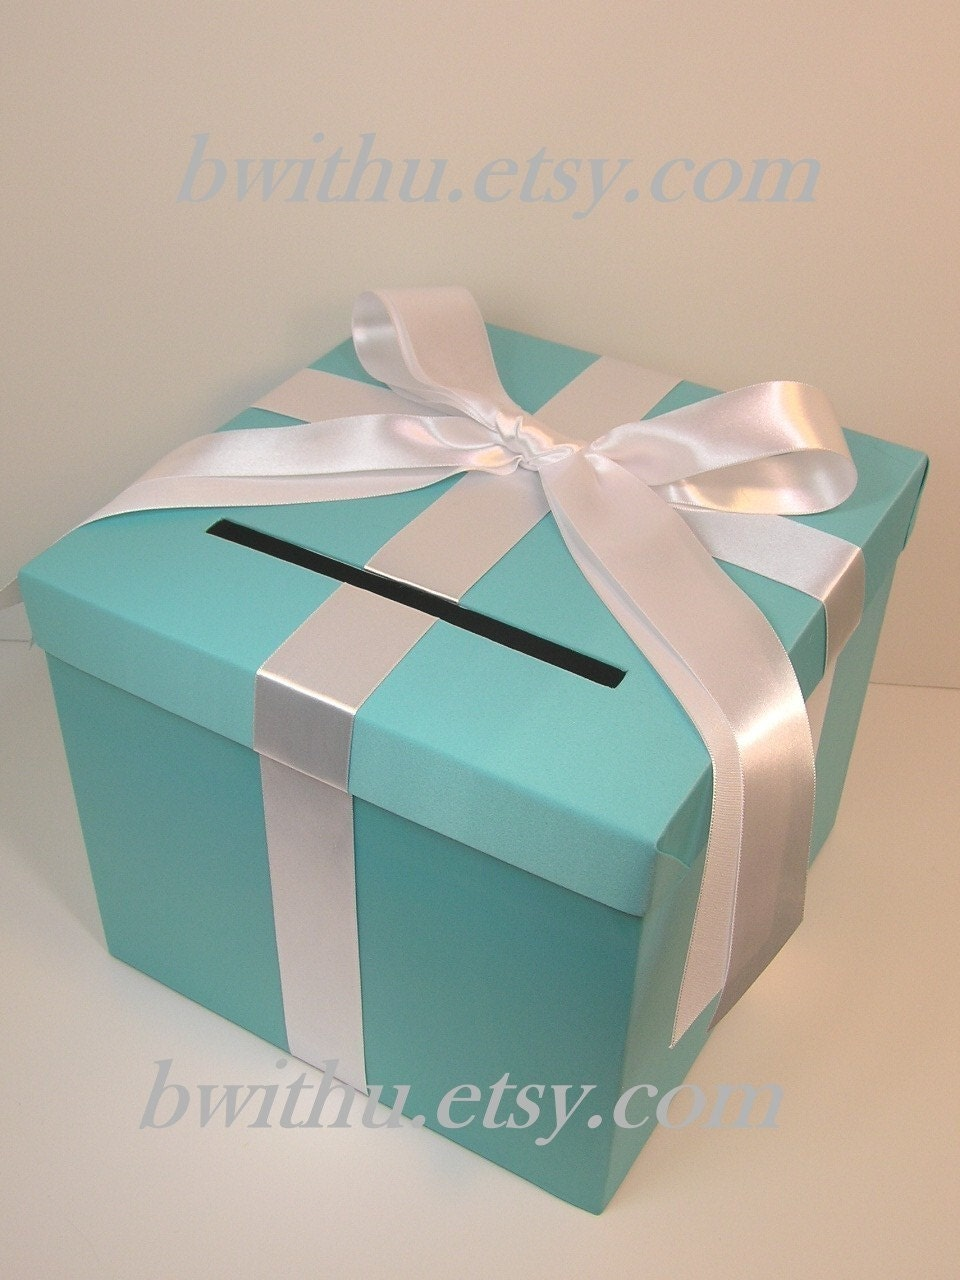 Wedding Gift Box Ideas : Gift Card Box Ideas For Wedding Tiffany blue wedding card box